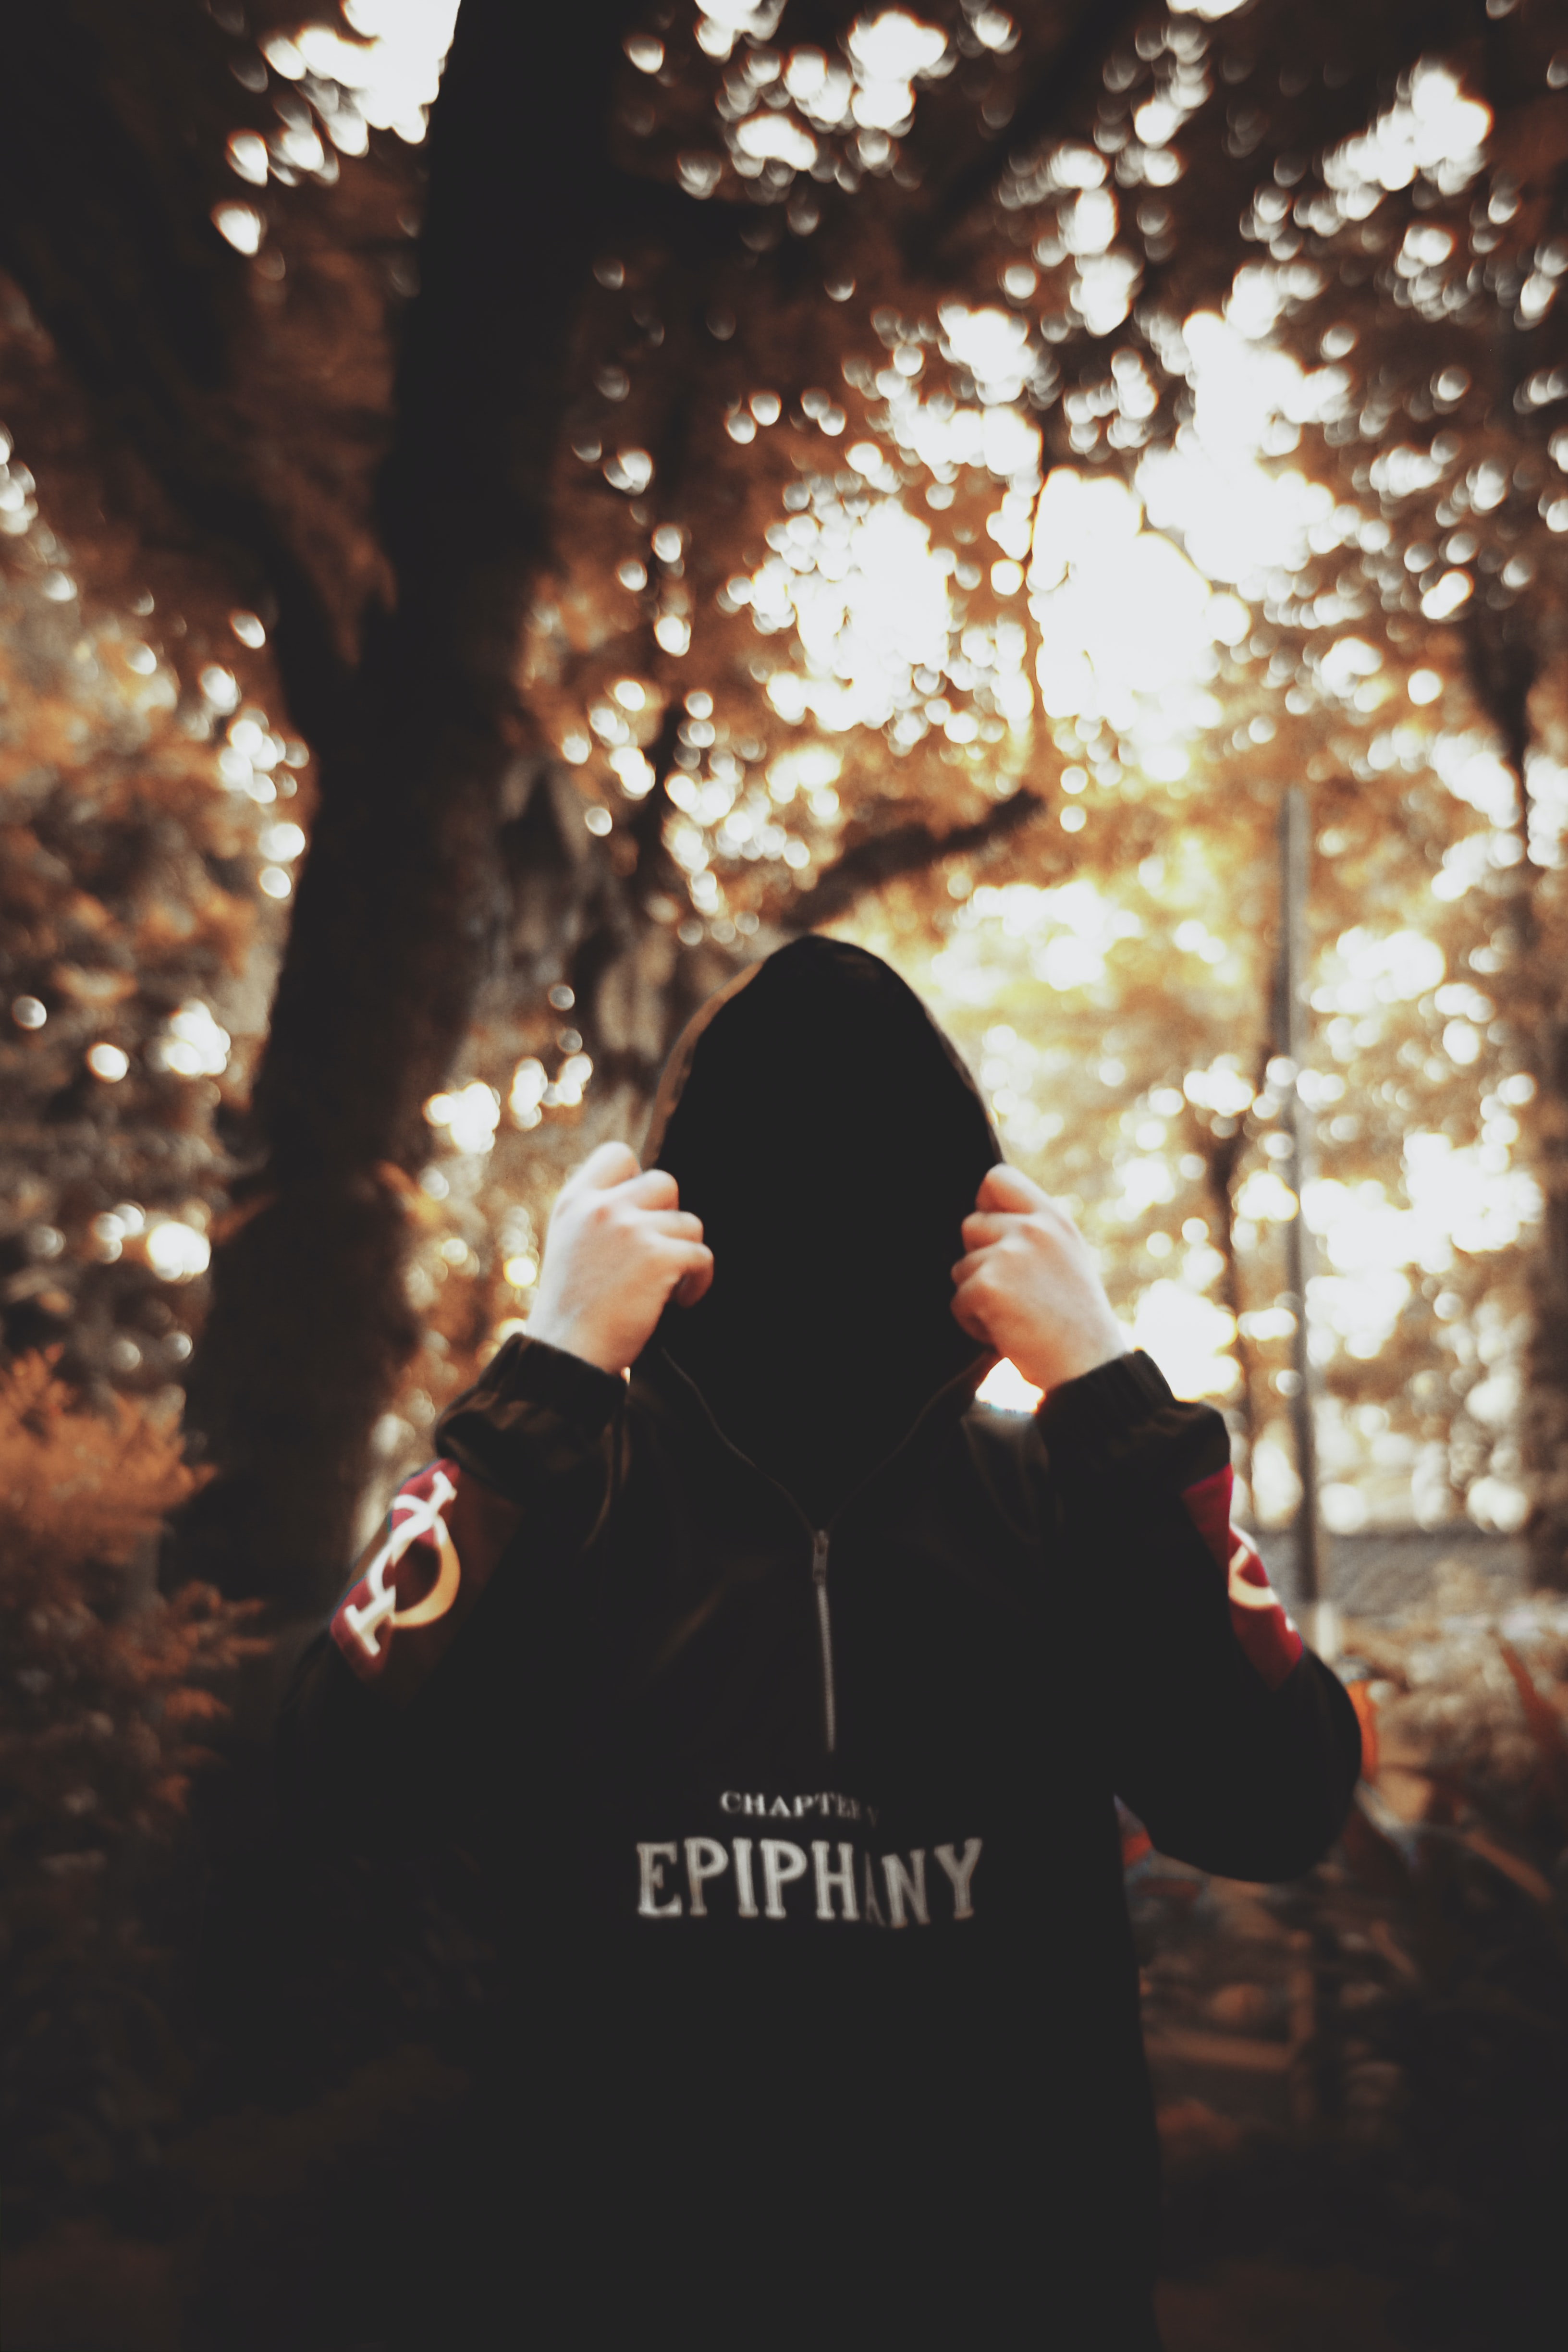 person wearing black hooded jacket while standing under the tree